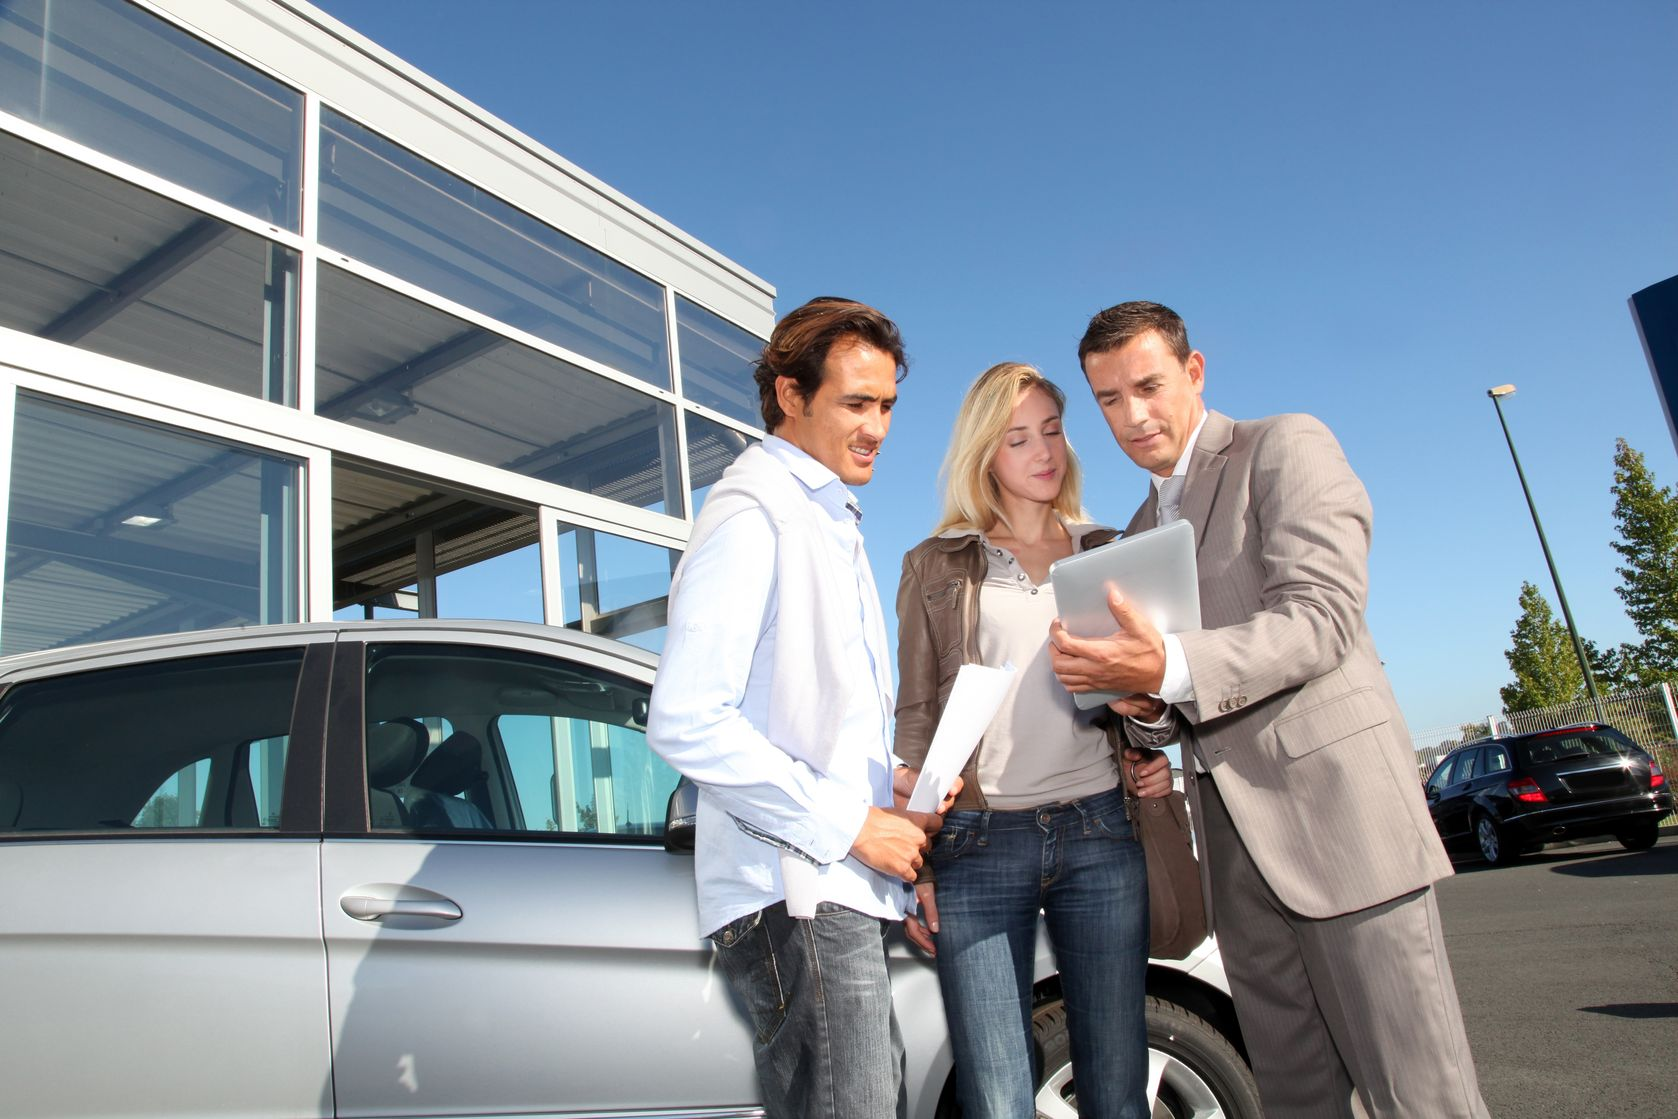 Bandon Auto Dealers Insurance